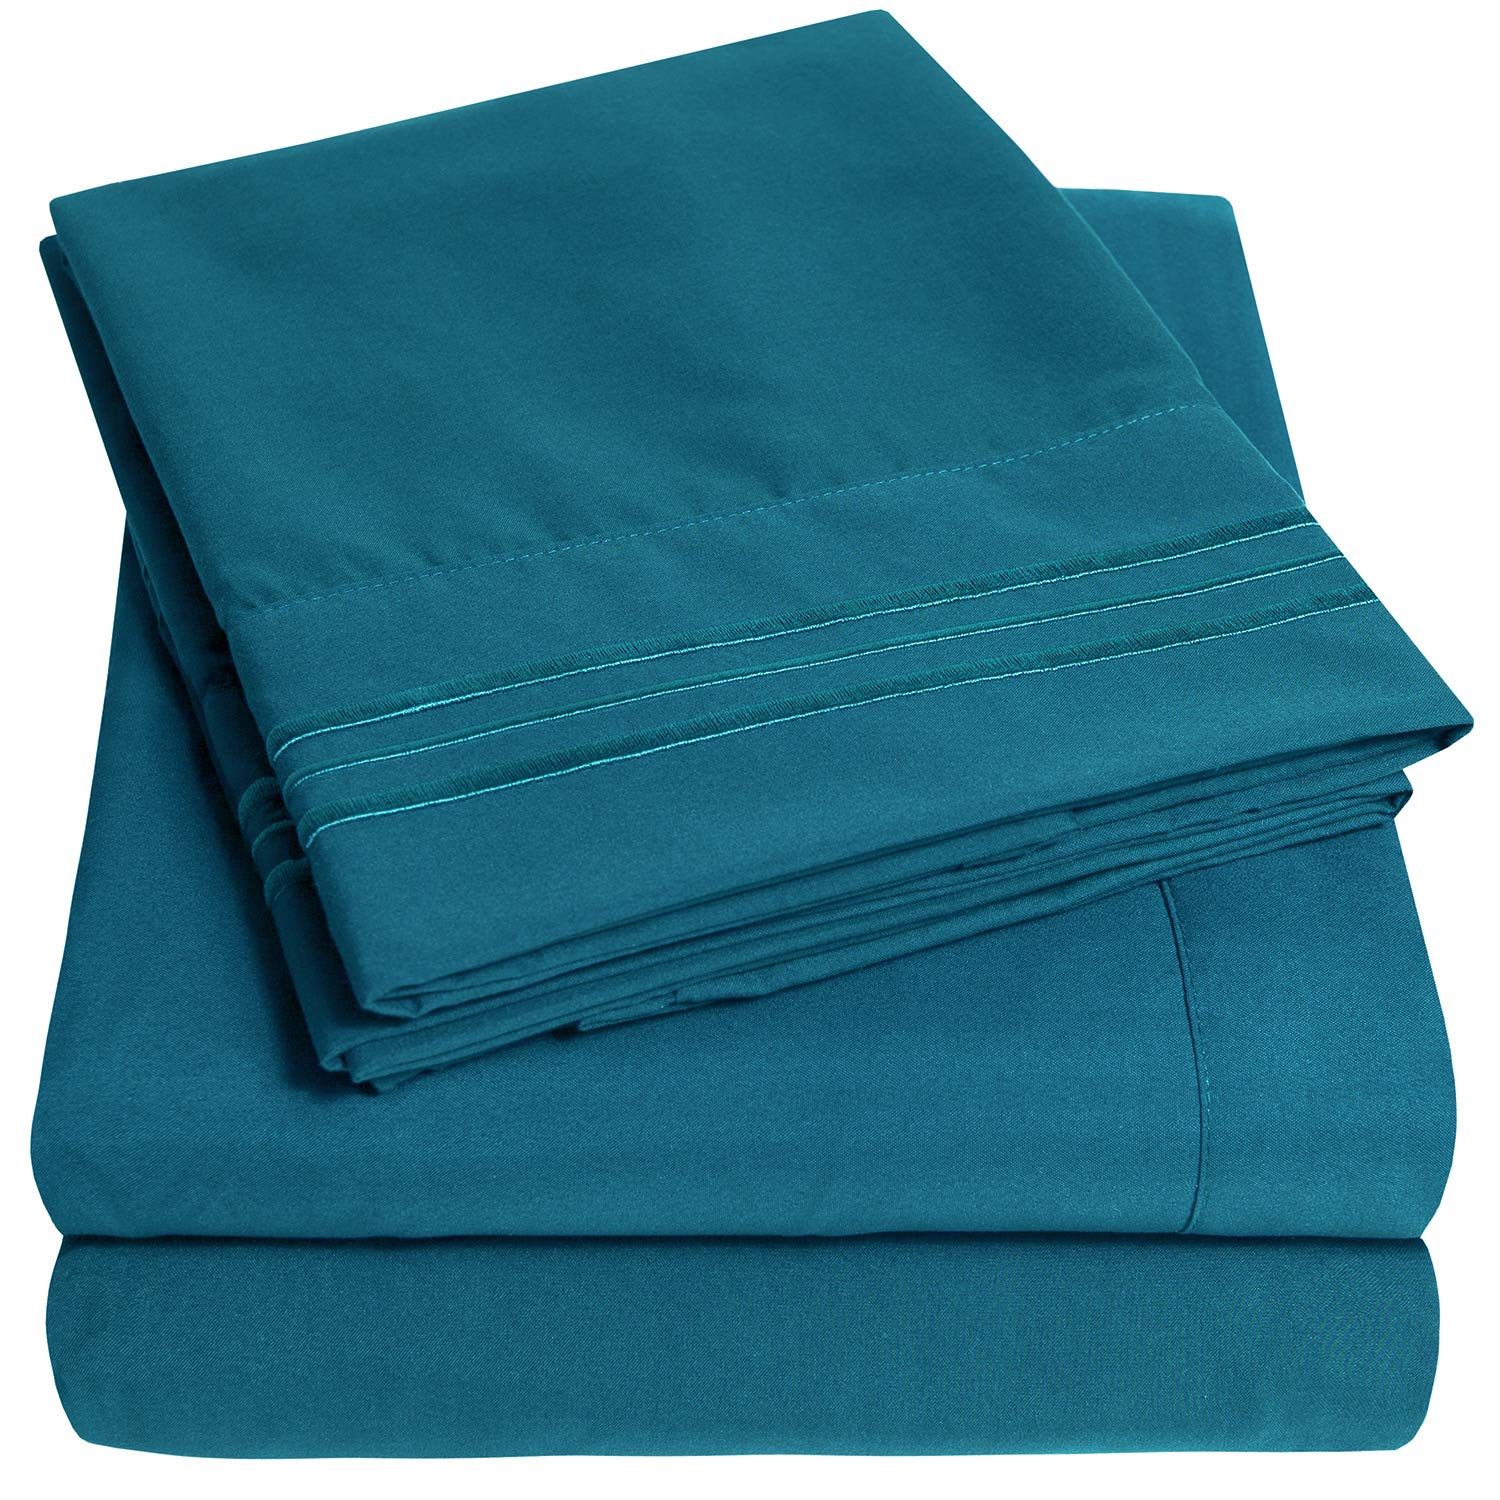 1500 Supreme Collection Extra Soft California King Sheets Set, Teal - Luxury Bed Sheets Set with Deep Pocket Wrinkle Free Hypoallergenic Bedding, Over 40 Colors, California King Size, Teal